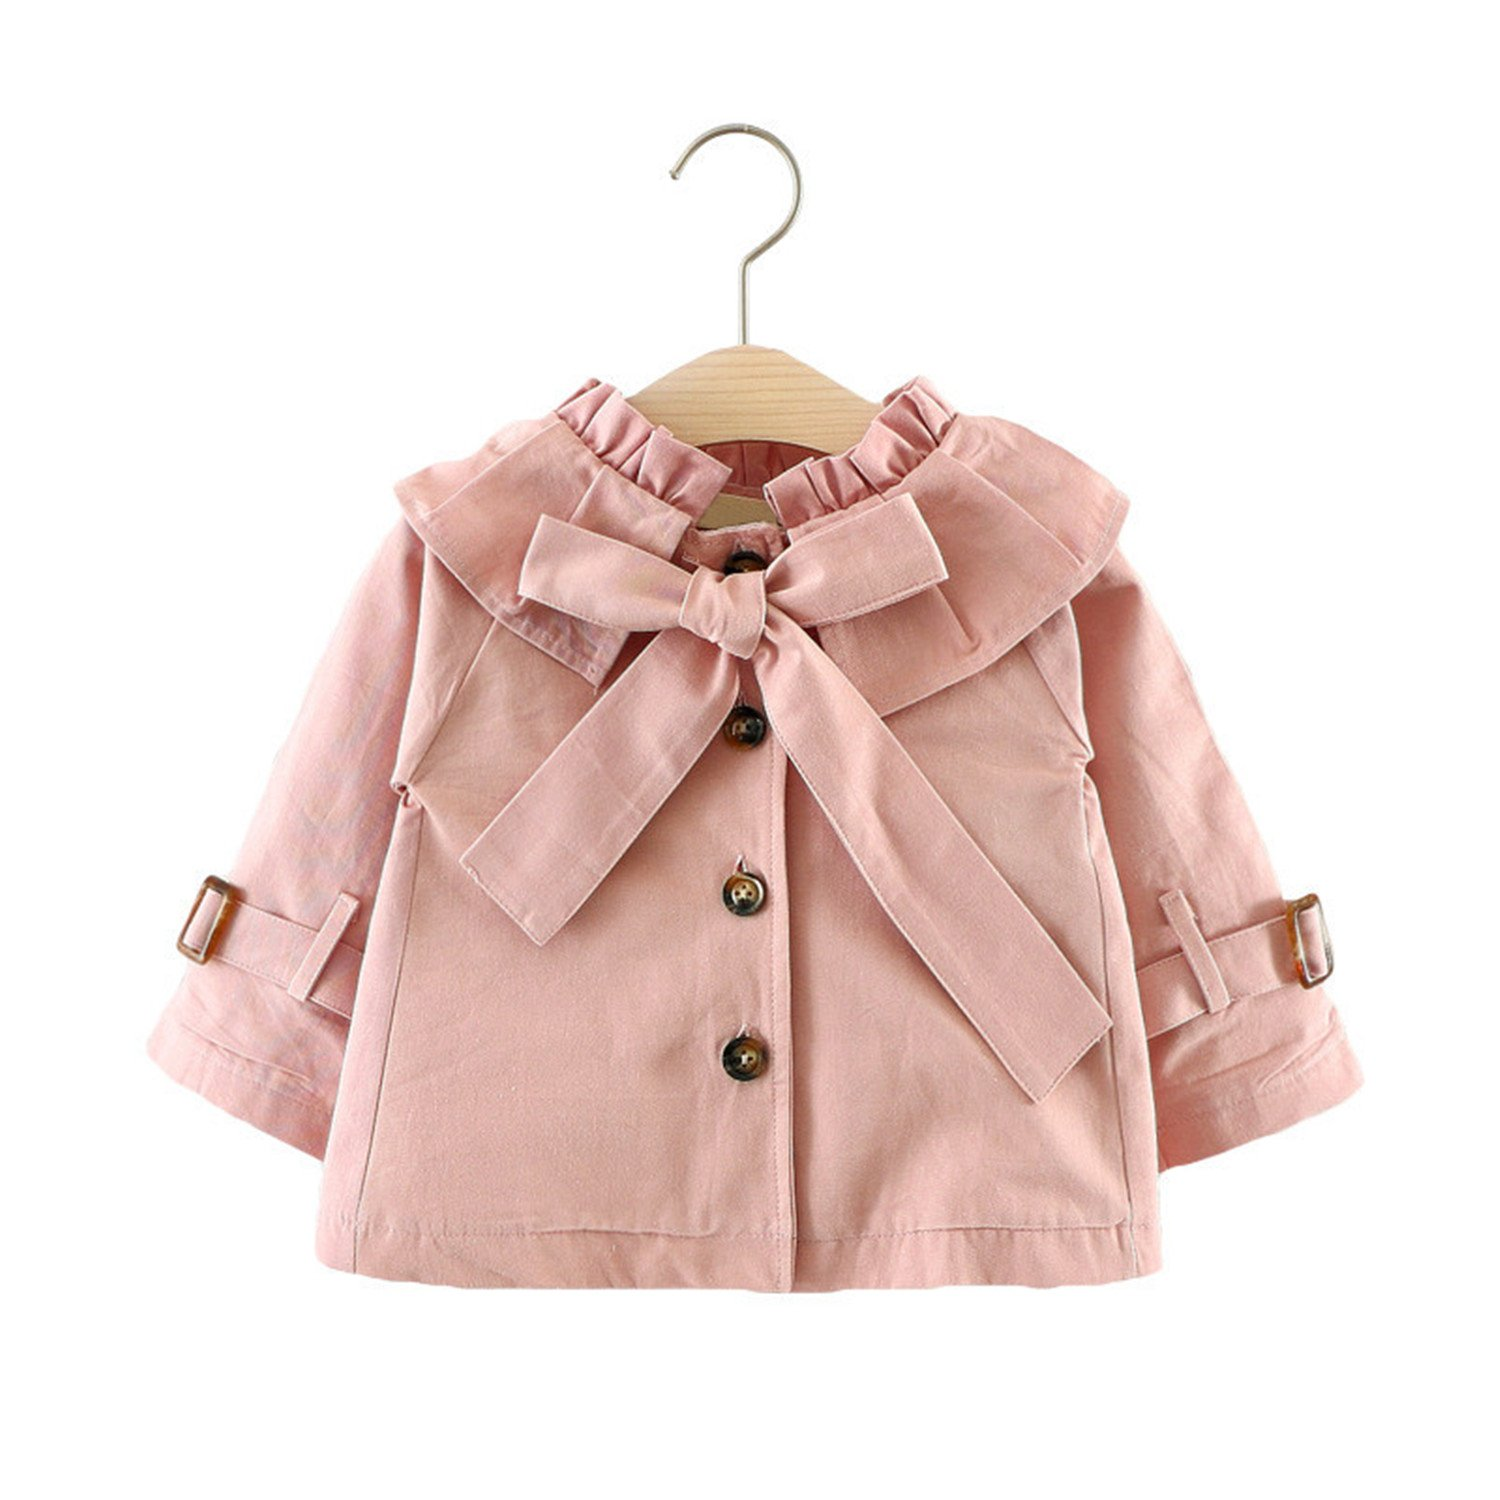 Matterin Christiao New Autumn Girls Jacket Coat Girls Outerwear Baby Girl Clothes Trench Coat